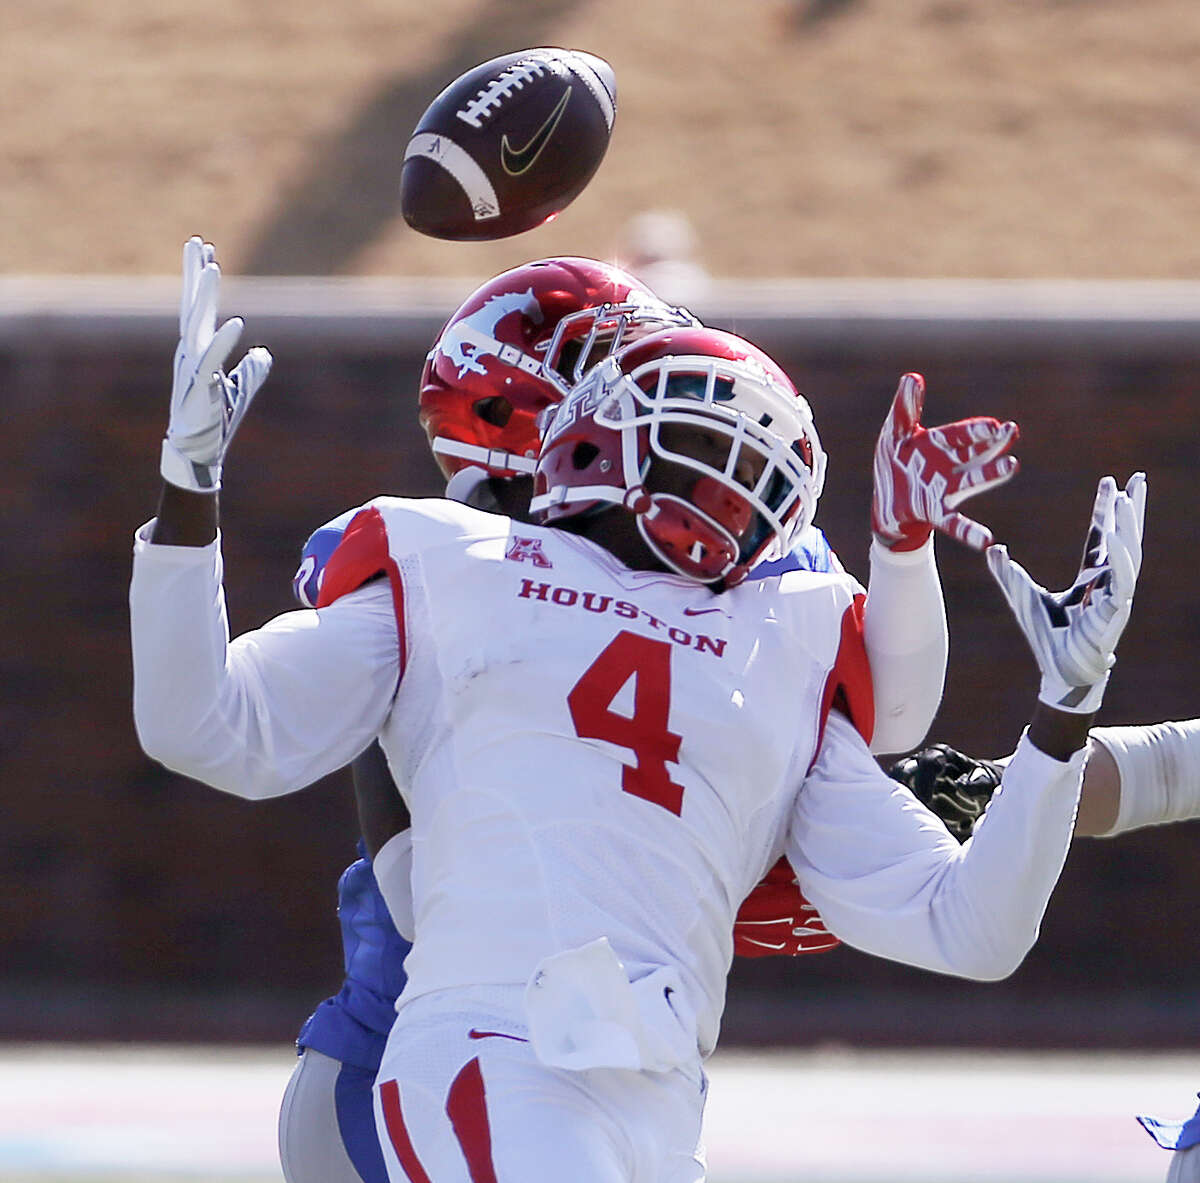 Houston wide receiver Daniel Spencer (4) is unable to catch a pass as SMU defensive back Darrion Richardson (29) defends during the first half of an NCAA college football game Friday, Nov. 28, 2014, in Dallas. (AP Photo/The Dallas Morning News, Brandon Wade) MANDATORY CREDIT; MAGAZINES OUT; TV OUT; INTERNET USE BY AP MEMBERS ONLY; NO SALES